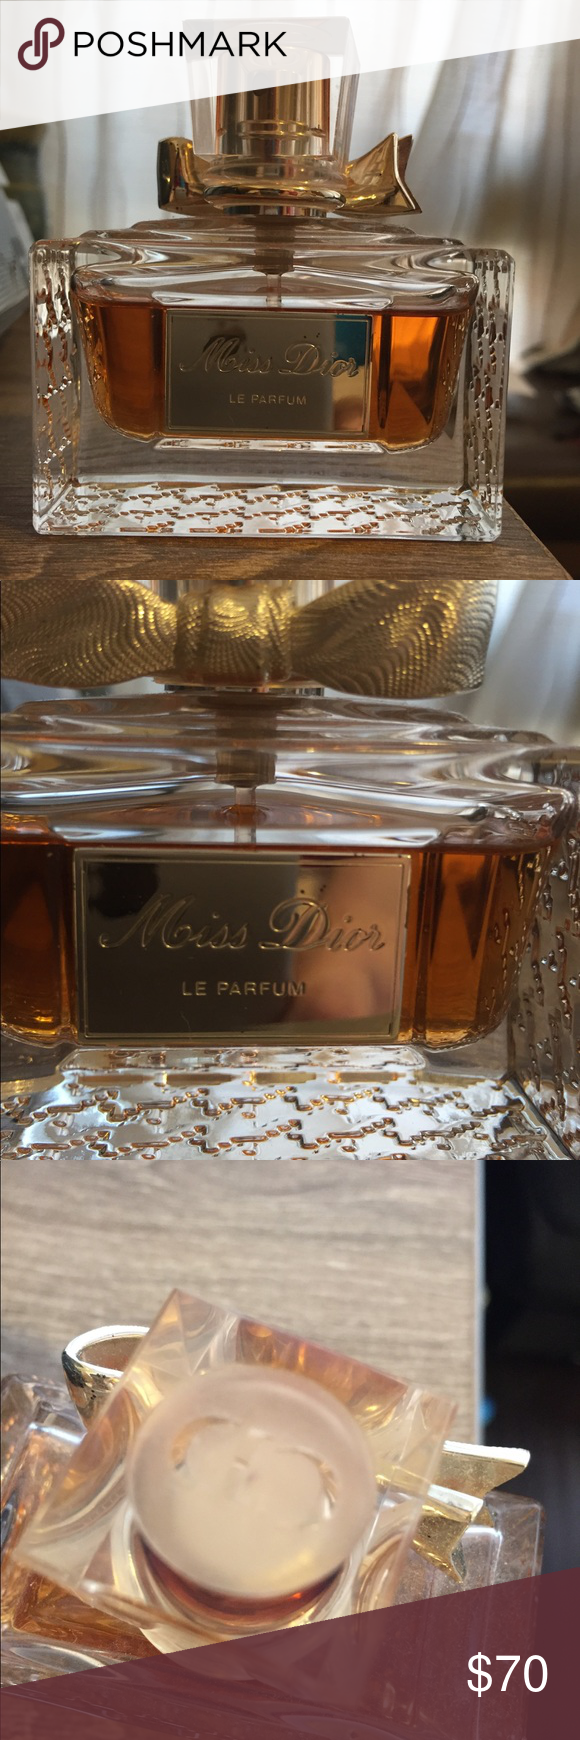 Dior Miss Dior Le Parfum 95 Full Scent Was Just Not For Me